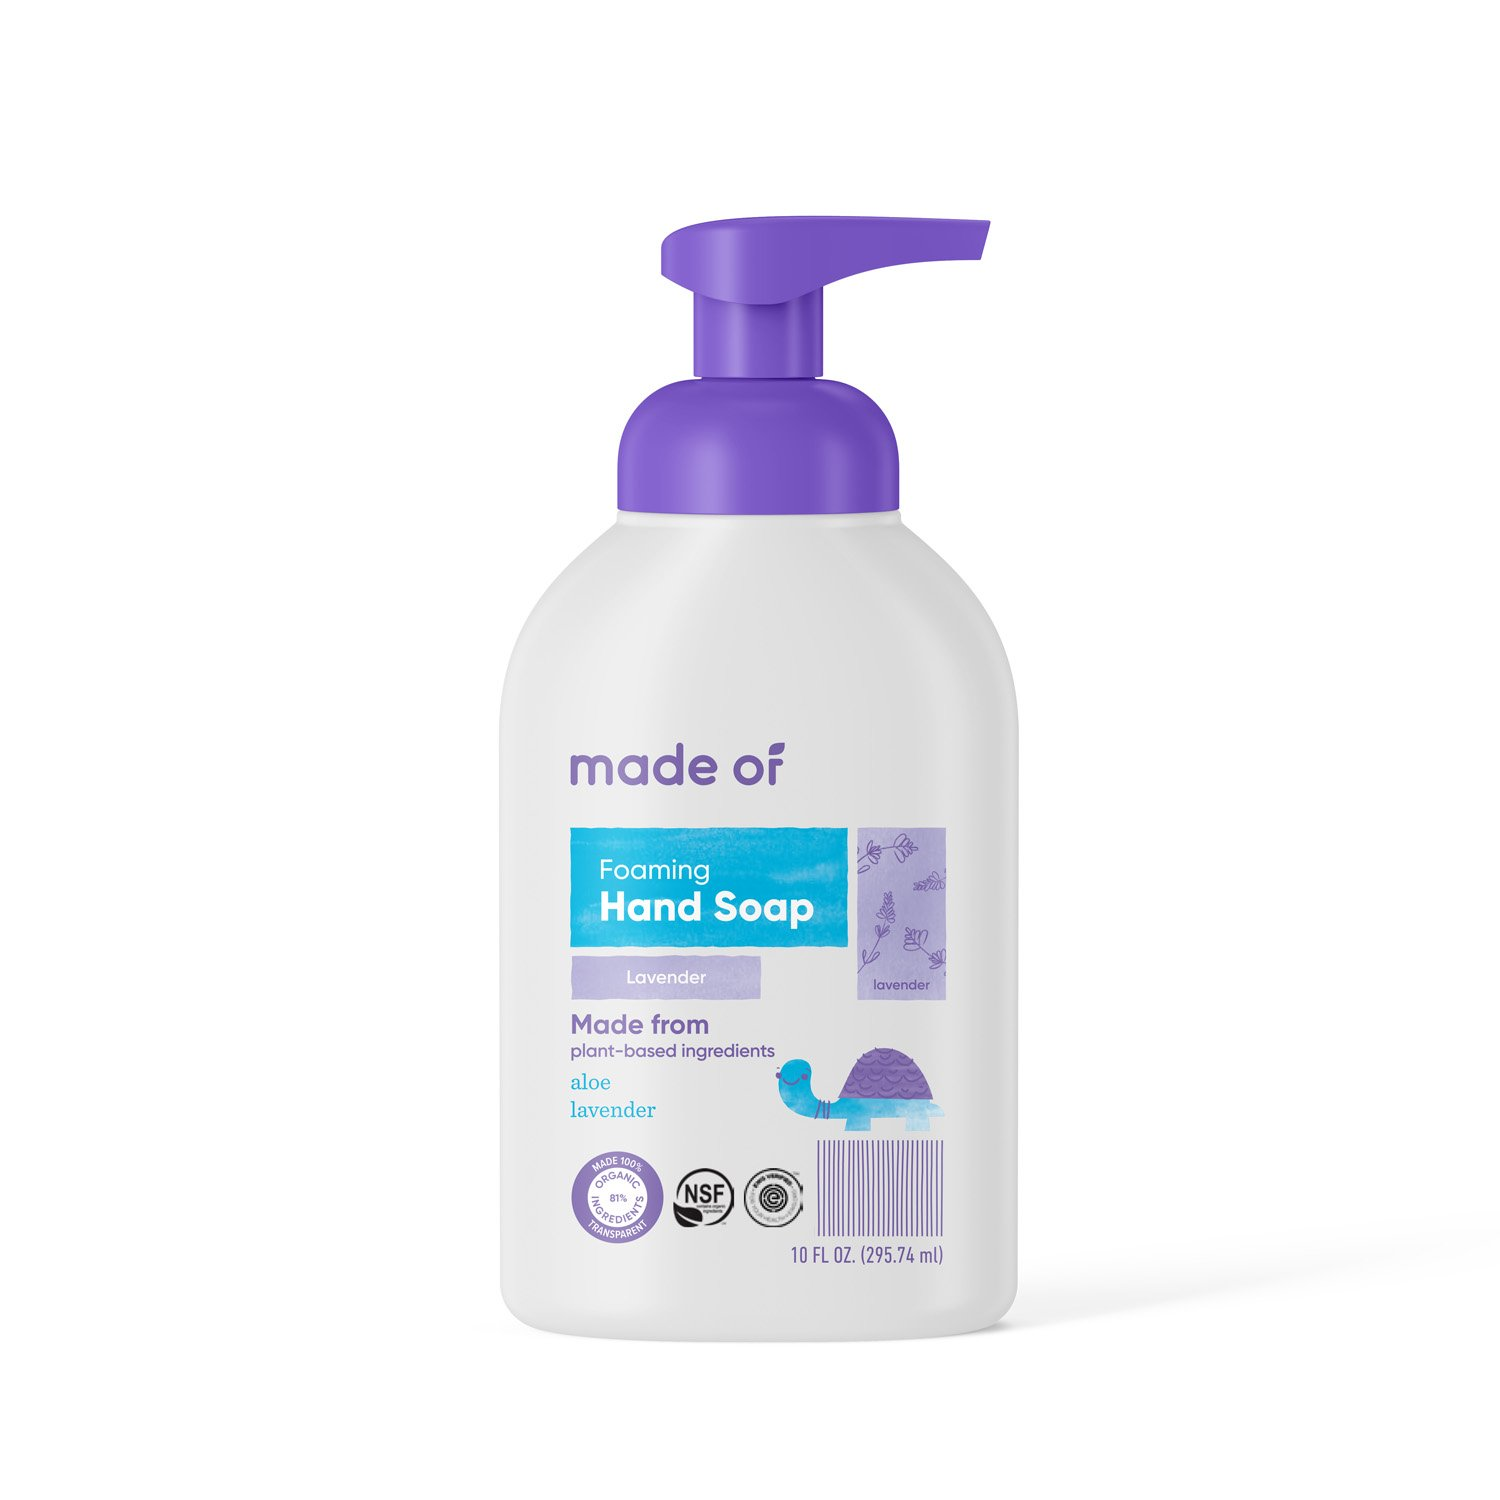 Organic Hand Soap by MADE OF - Dermatologist and Pediatrician Tested - NSF Organic and EWG Verified - For Sensitive Skin and Eczema - Made in USA - 10oz (Lavender, 1-Pack)